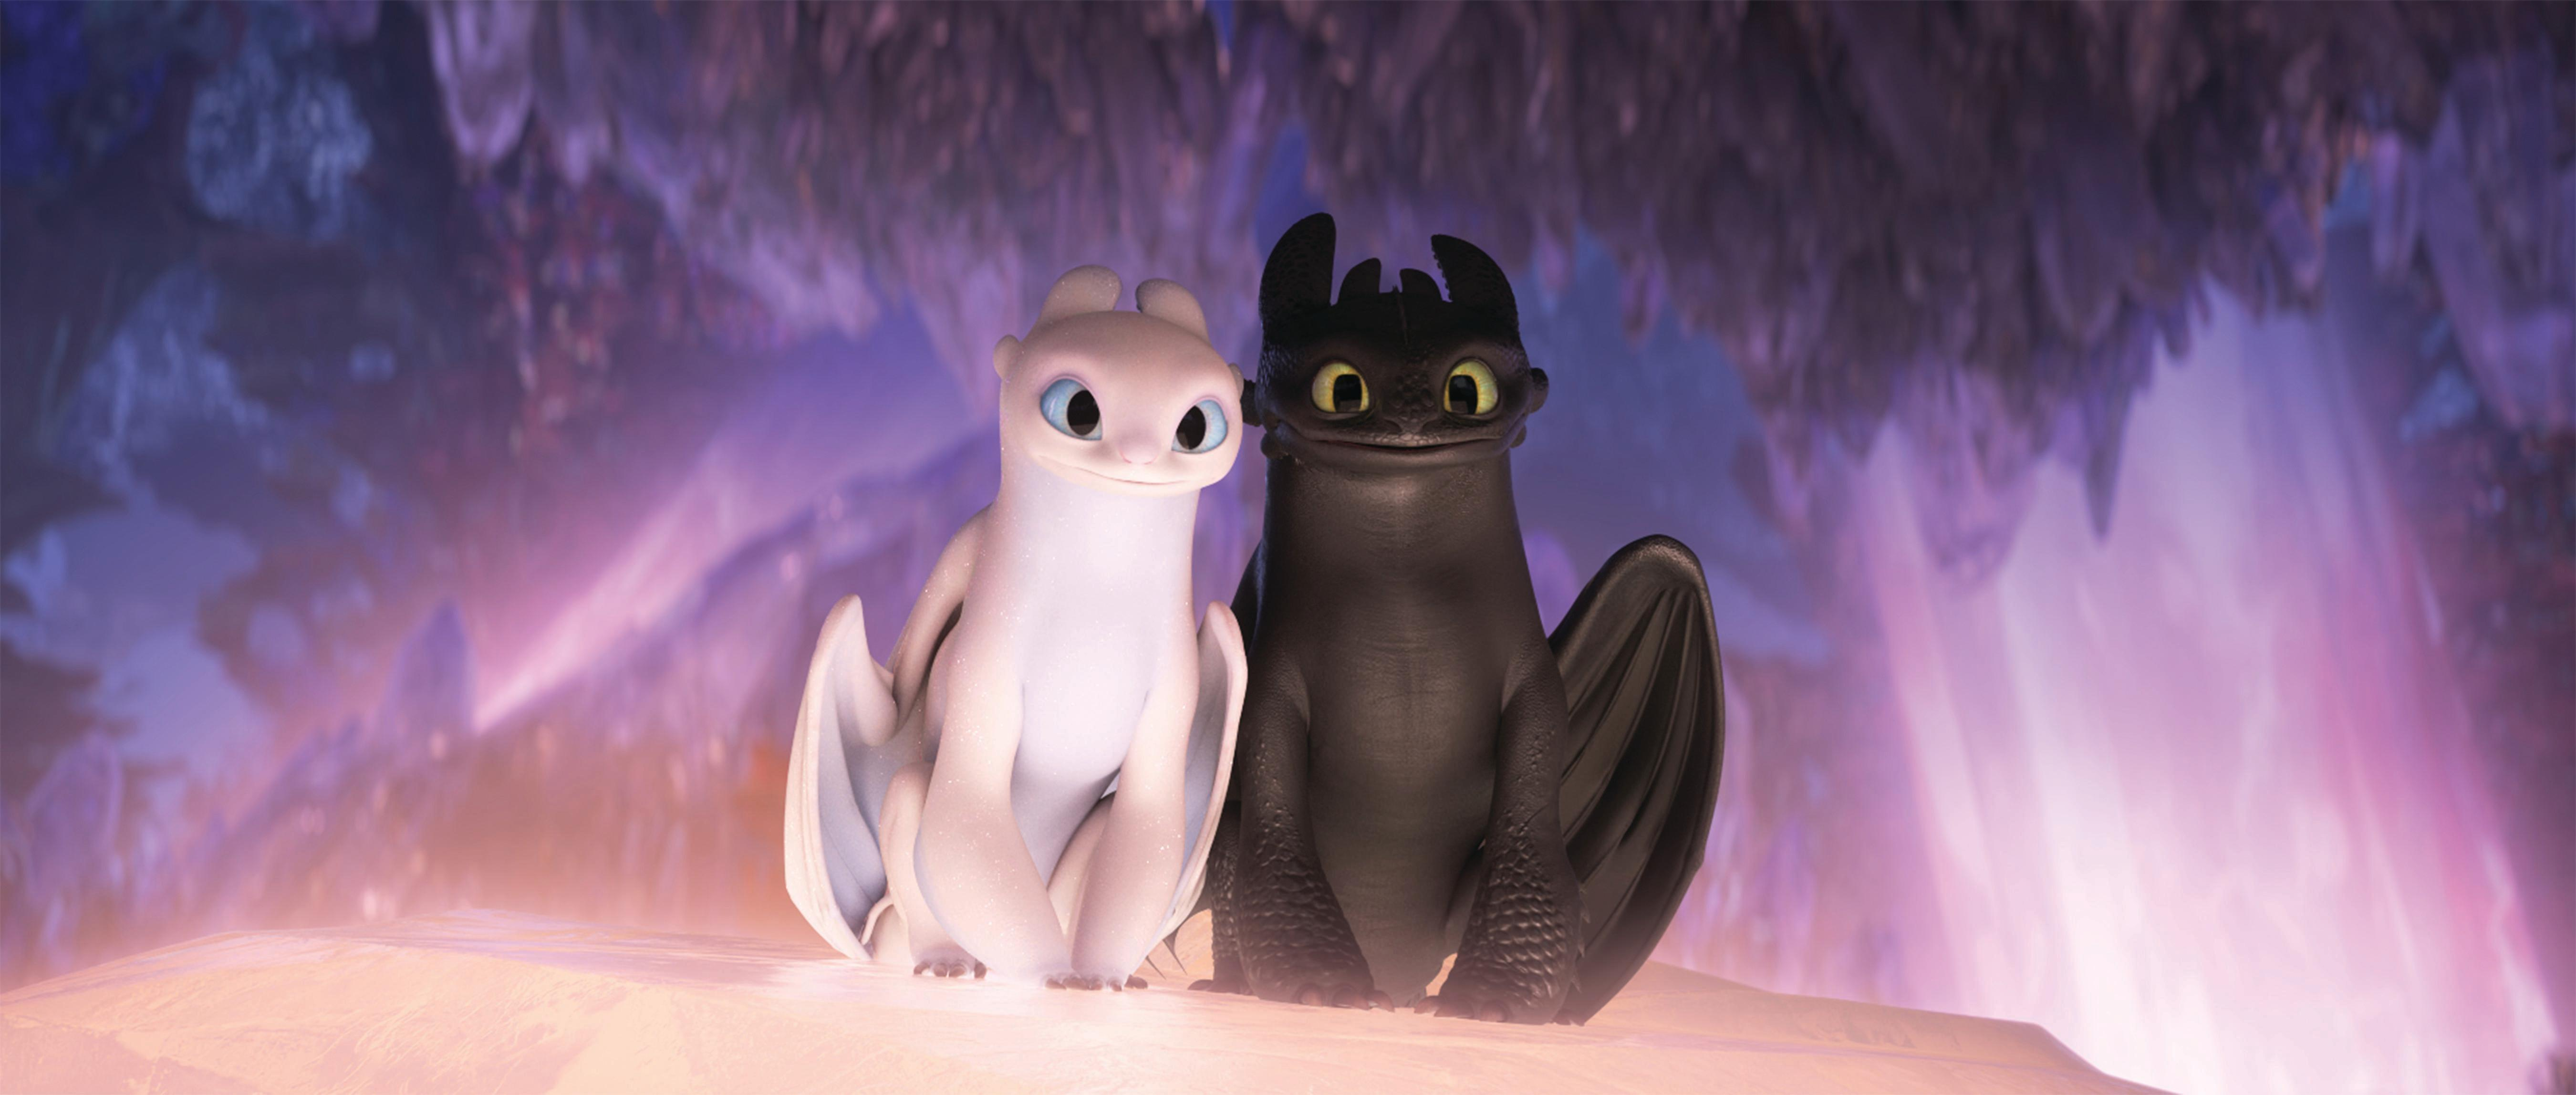 Toothless and Light Fury's Relationship